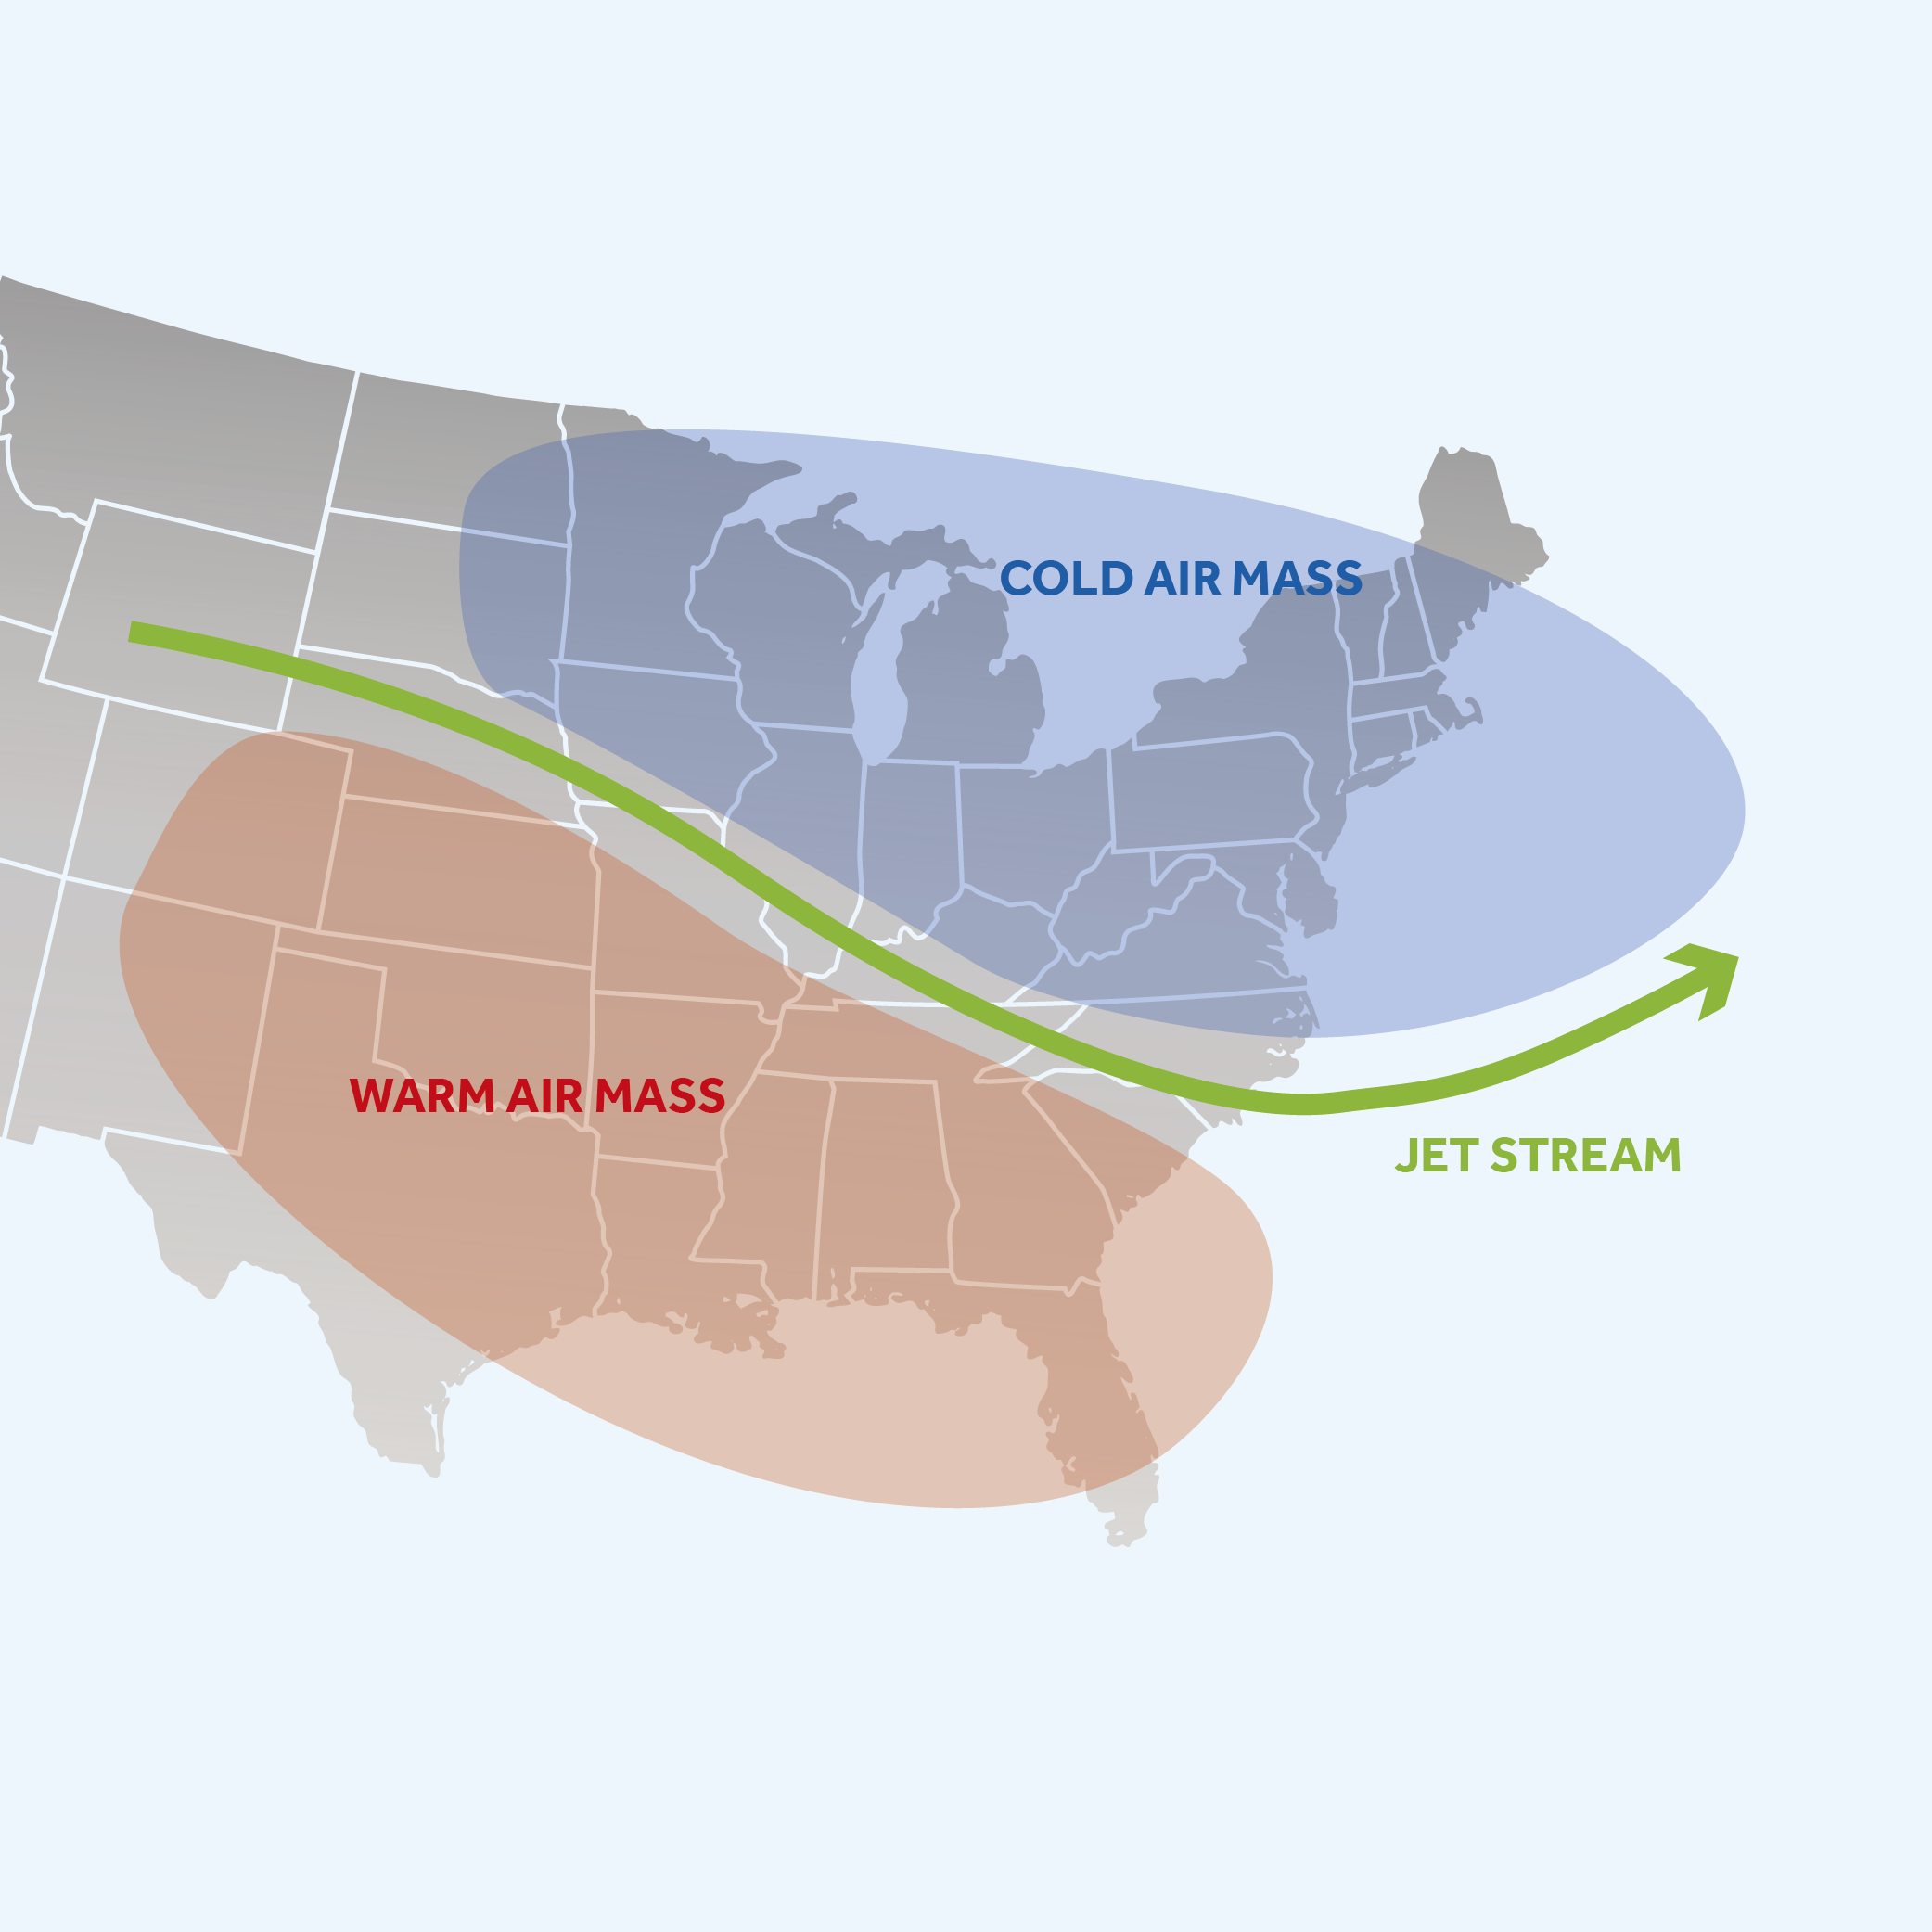 An illustration with a blue bubble that represents cold air mass and a red bubble below it which represents warm air mass. In between the two bubbles is a green arrow which represents the jet stream